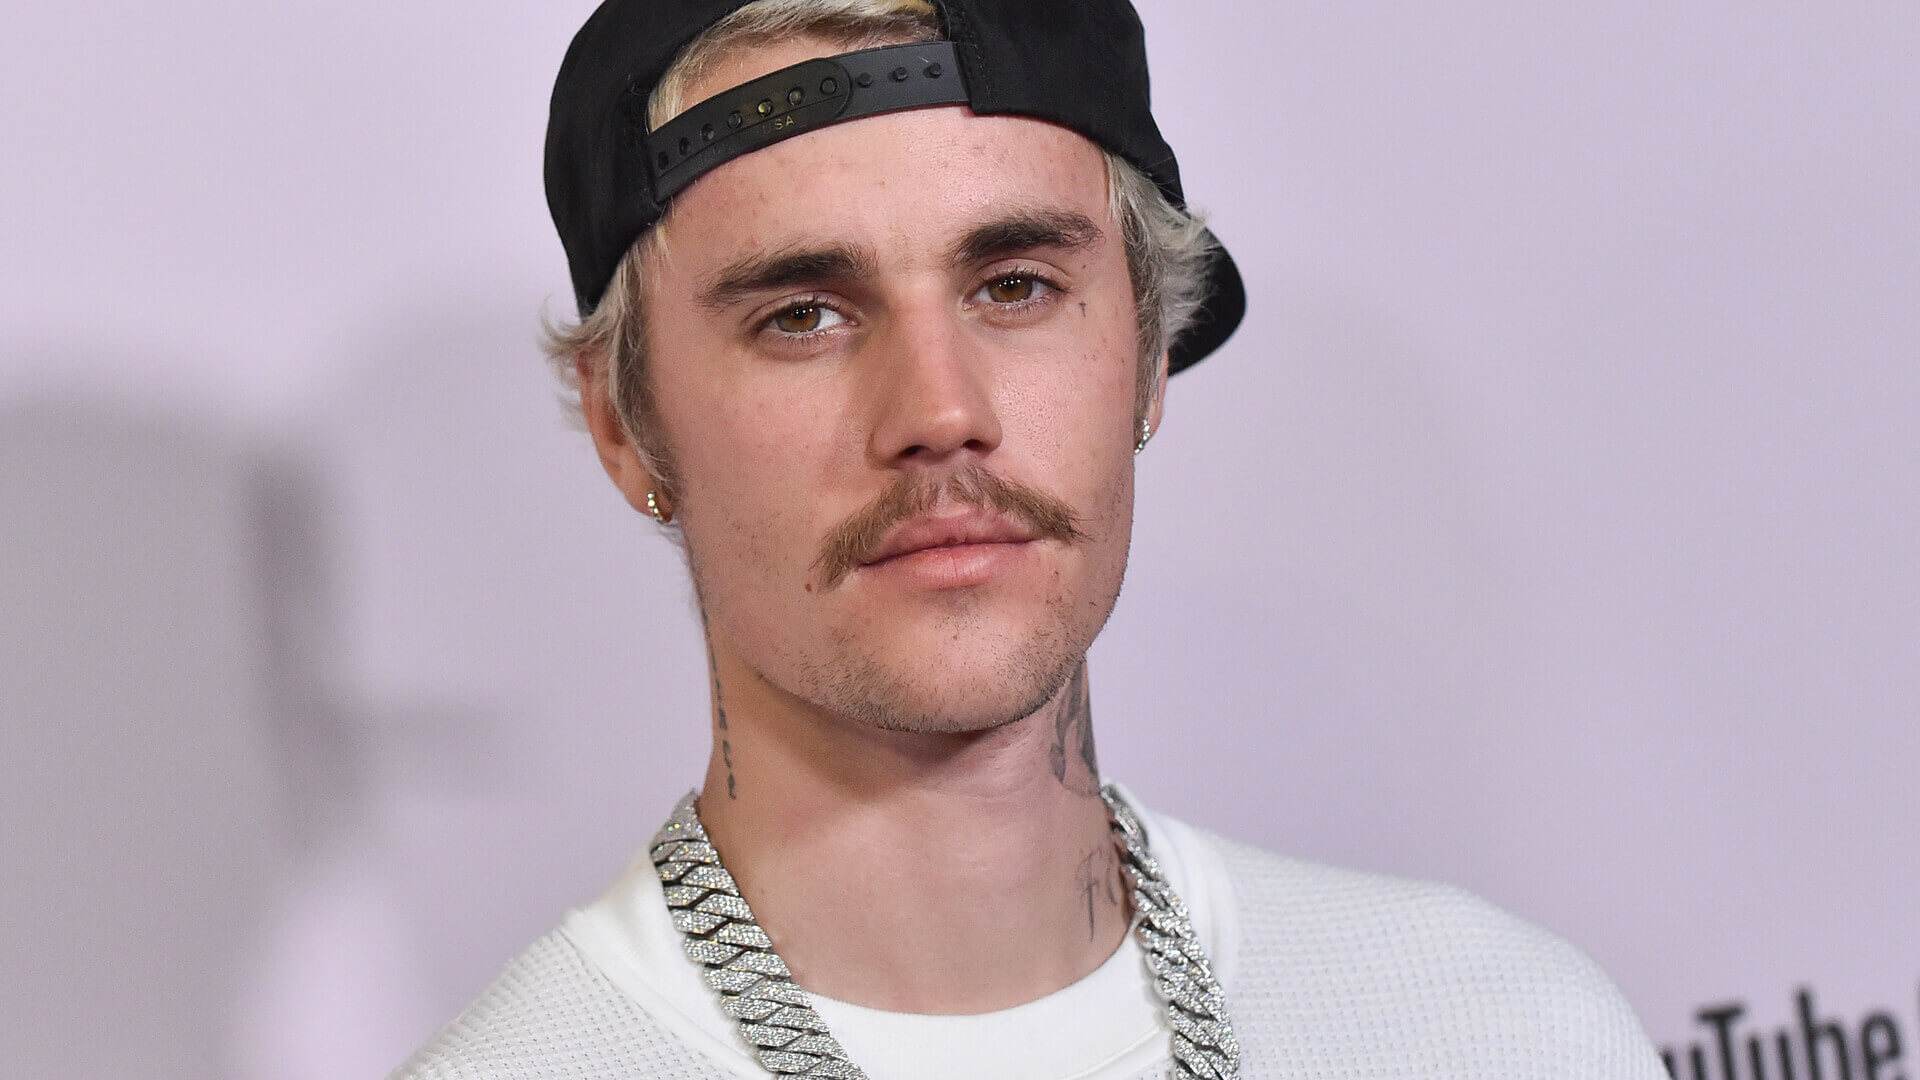 Justin Bieber Creates His Own Line of Pre-Rolled Joints